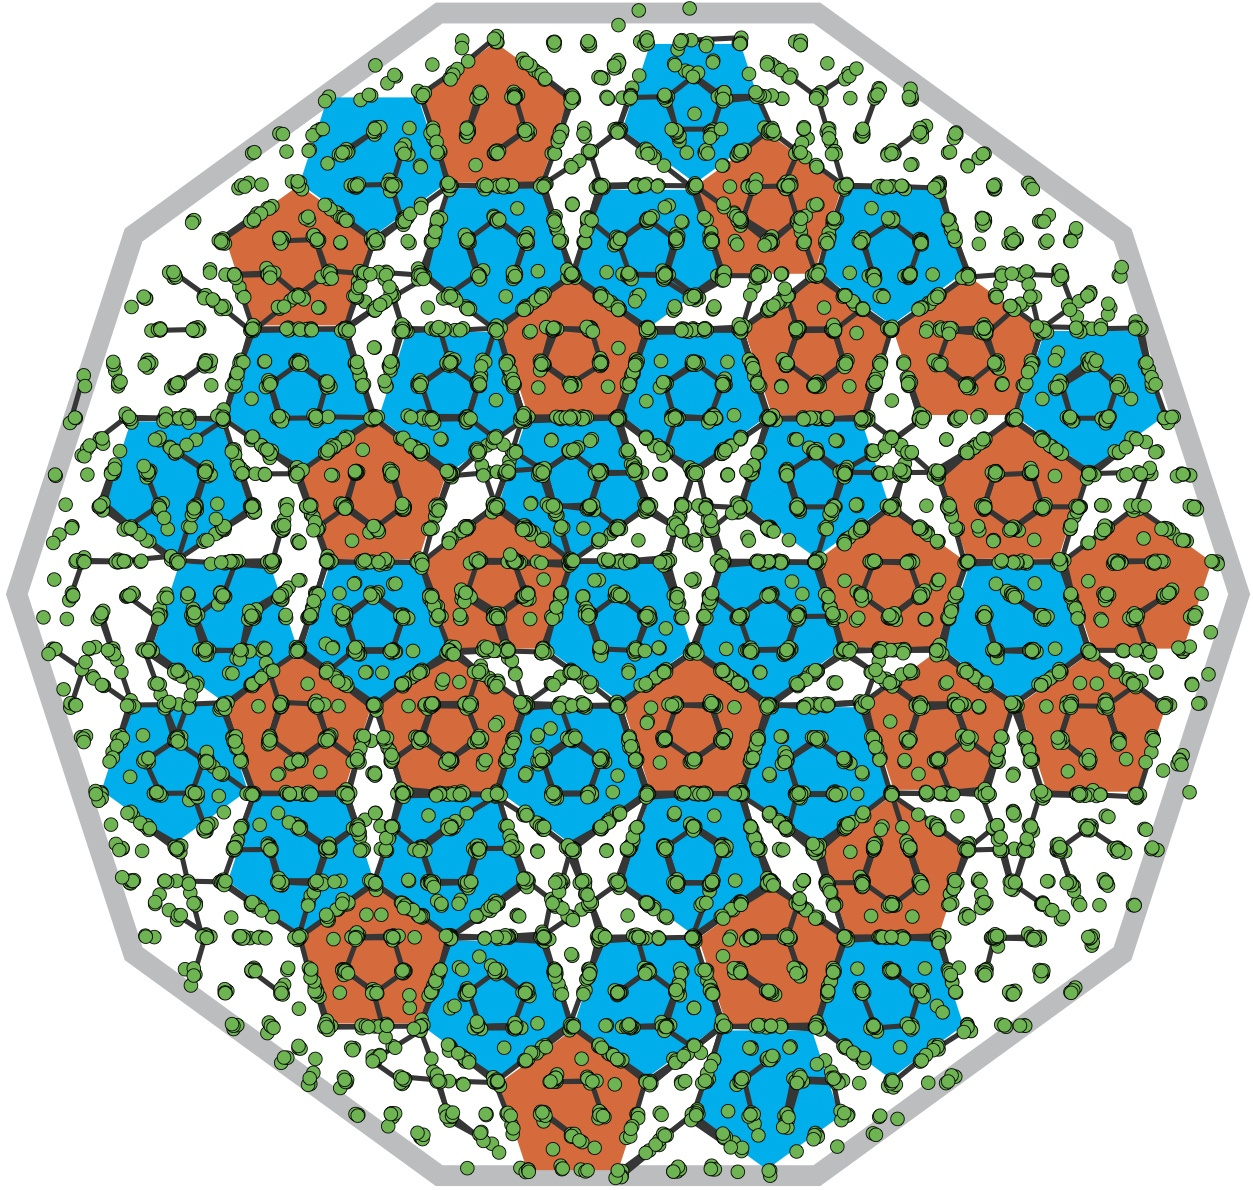 A cross-section of the icosahedral quasicrystal simulated by University of MIchigan researchers. While the exotic solid has order and rotational symmetry, it does not have a repeating pattern. Image credit: Michael Engel